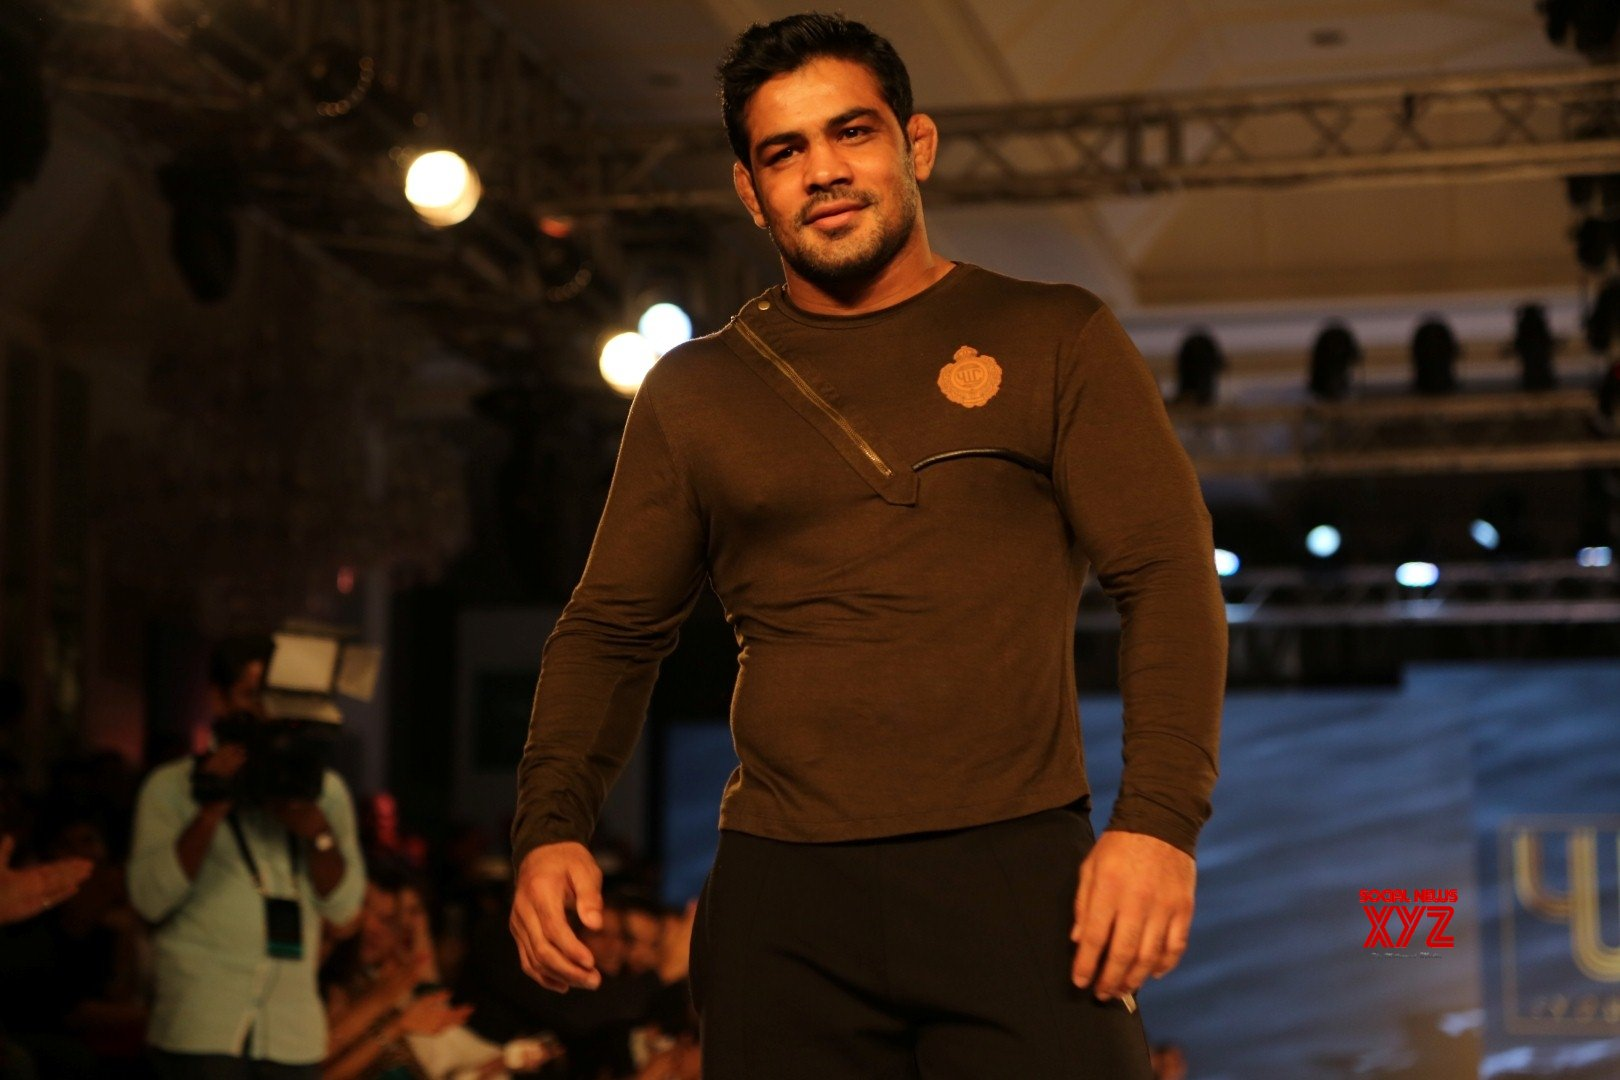 Two-time Olympic medallist Sushil has no time for negativity